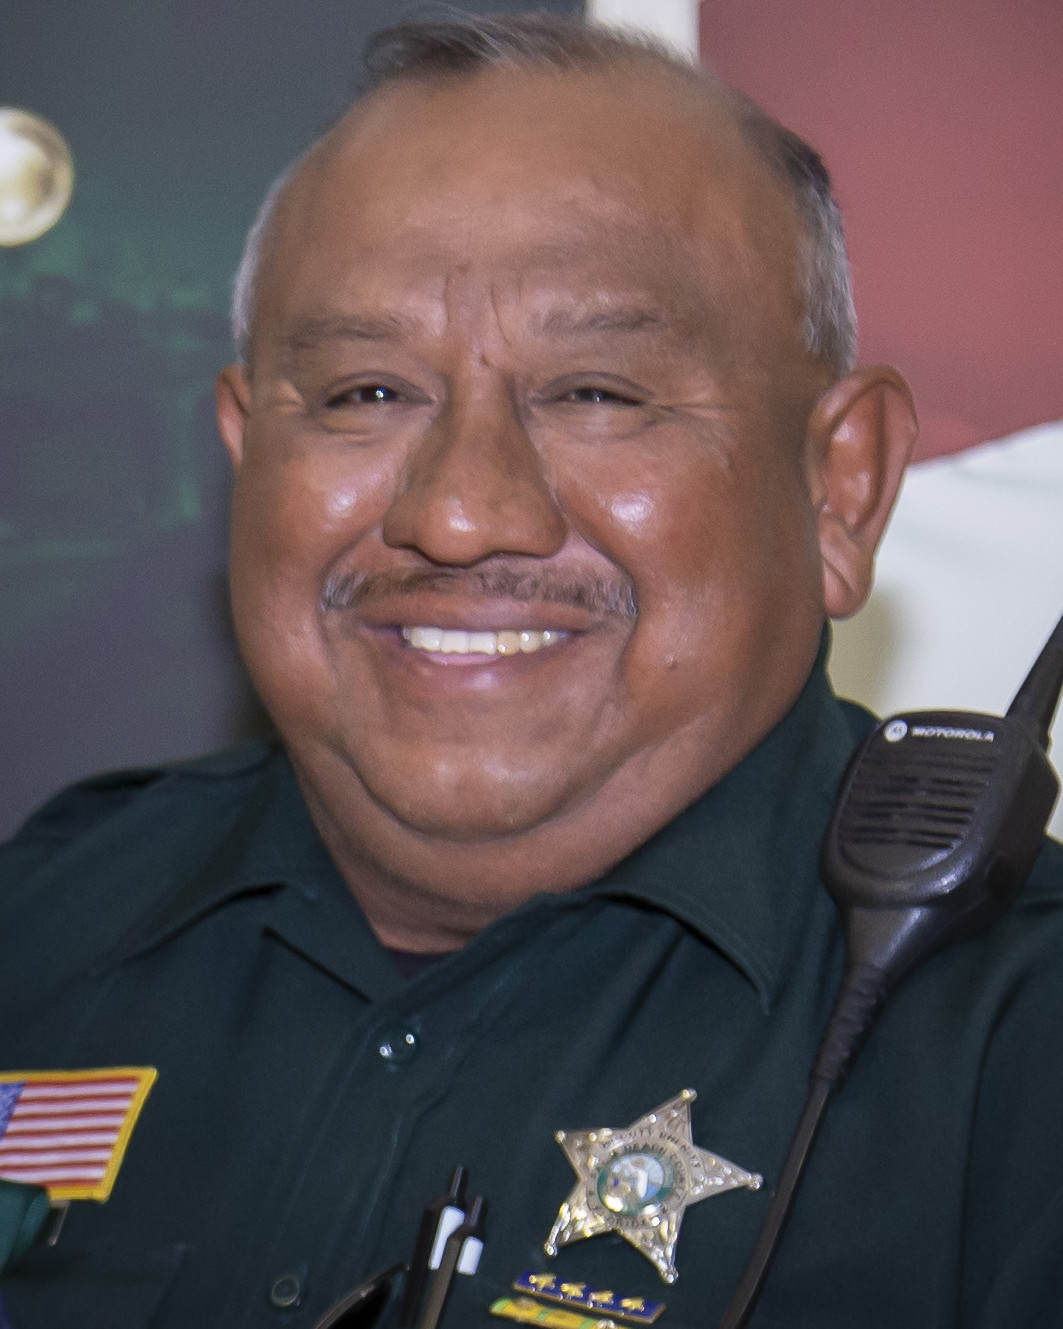 Deputy Sheriff Jacinto R. Navarro, Jr. | Palm Beach County Sheriff's Office, Florida